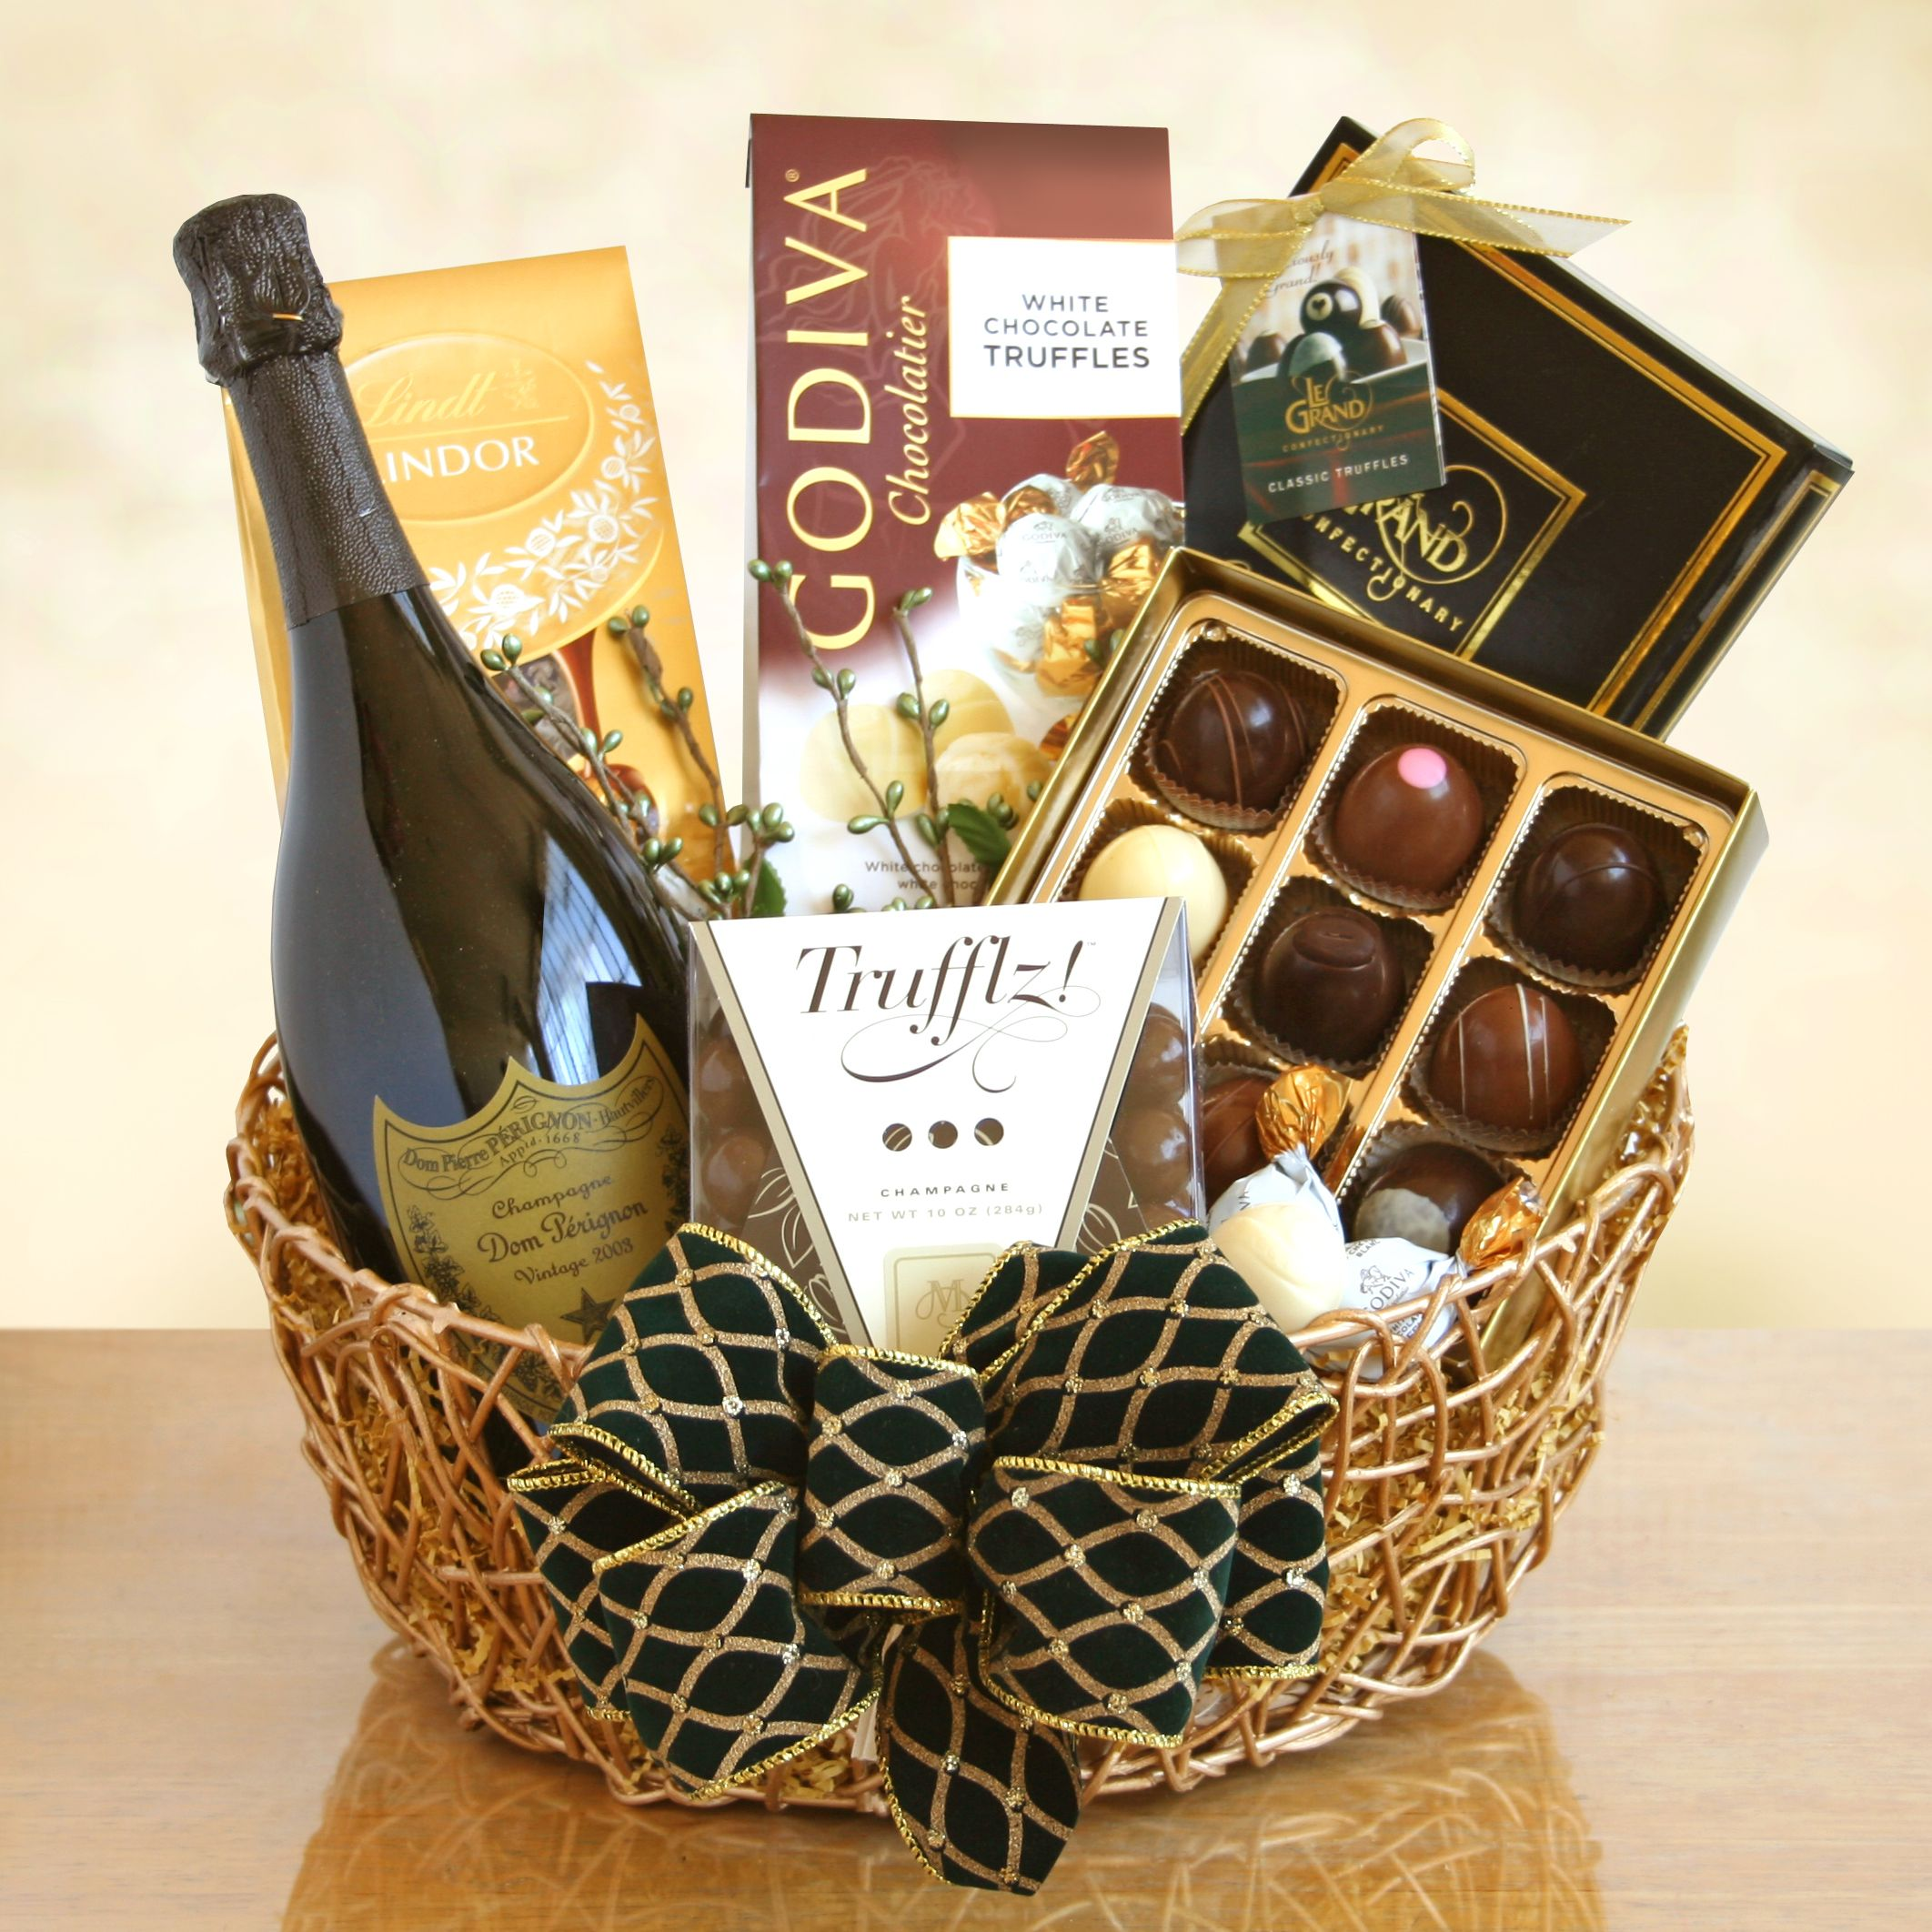 ART Among The FLOWERS Offers A Wide Selection Of Premium Wine Champagne Imported And Domestic Beer With Their Gourmet Gift Baskets